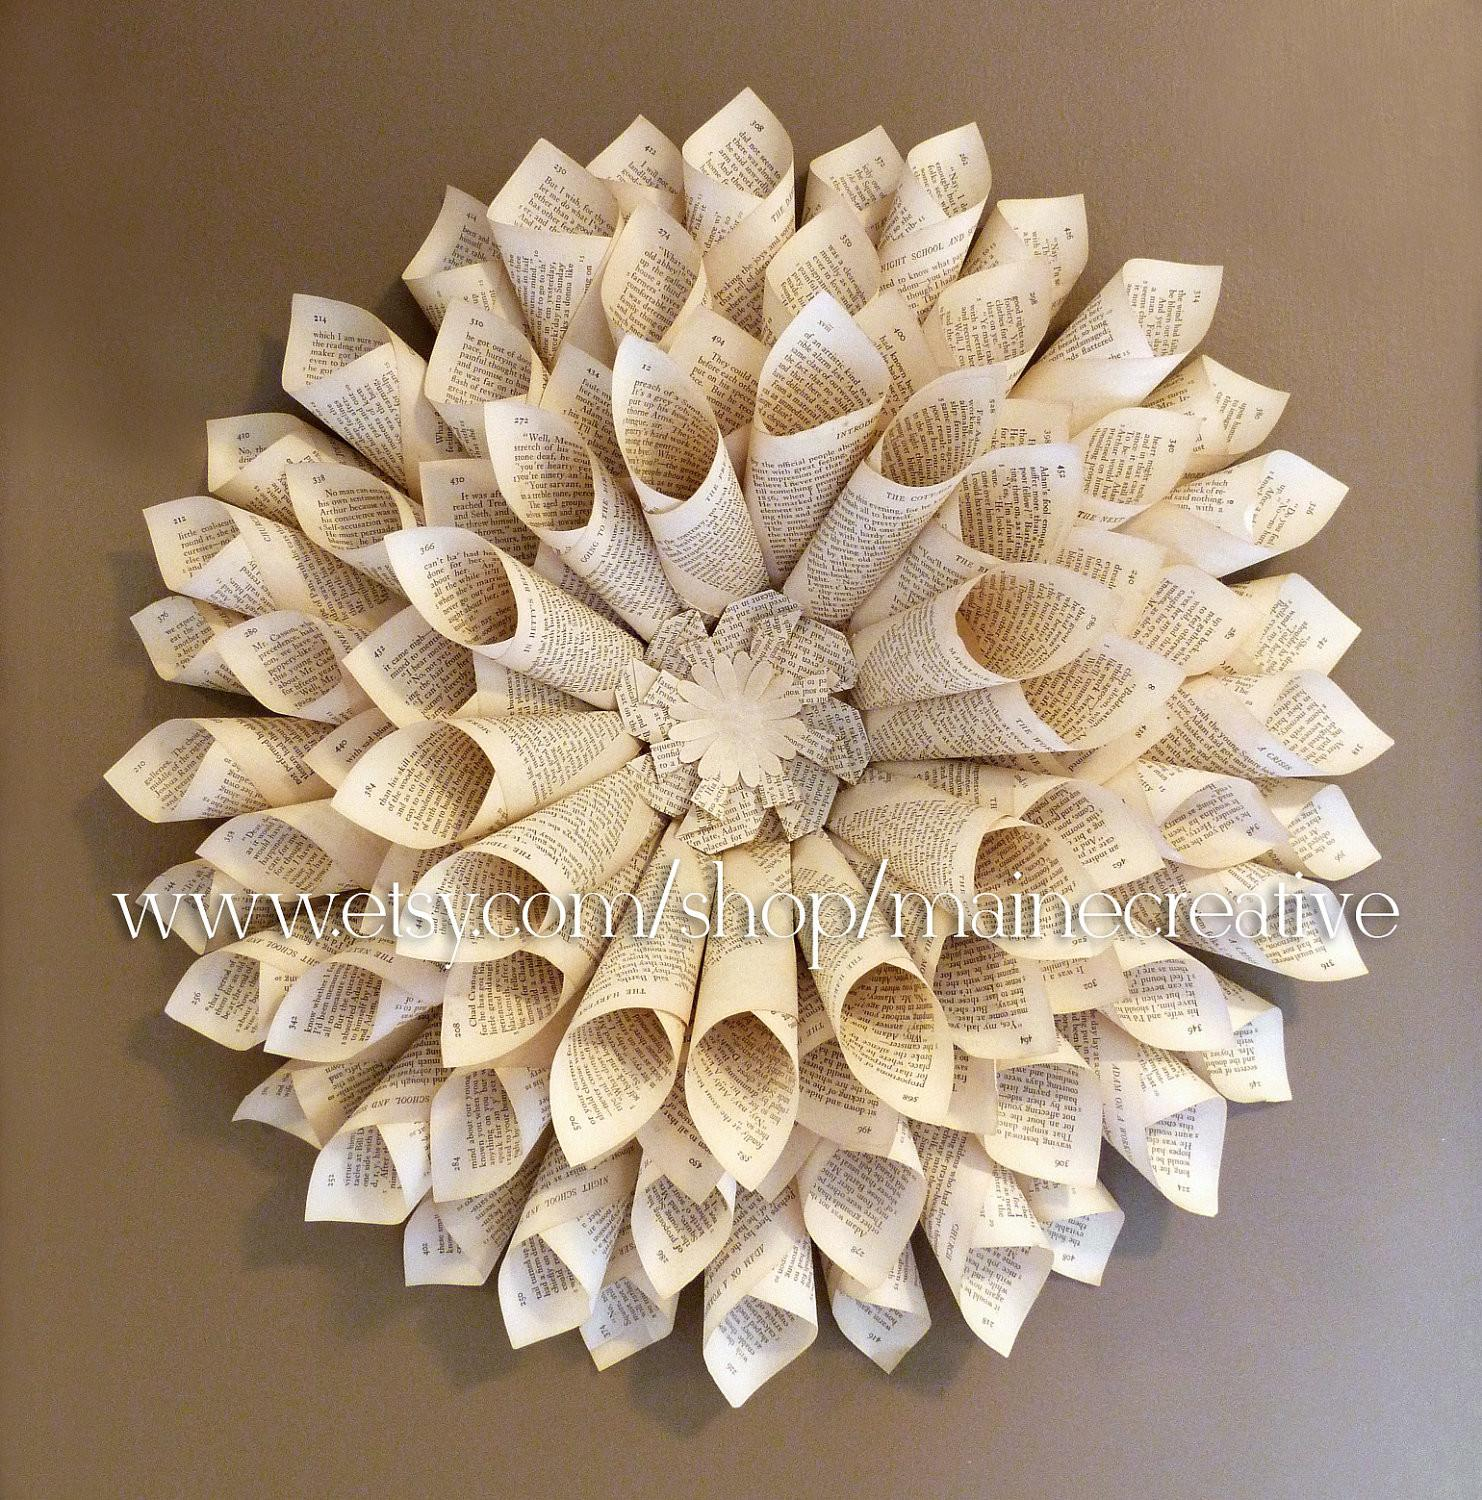 Bookpage Wallflower Dimensional Eco Friendly Recycled Wall